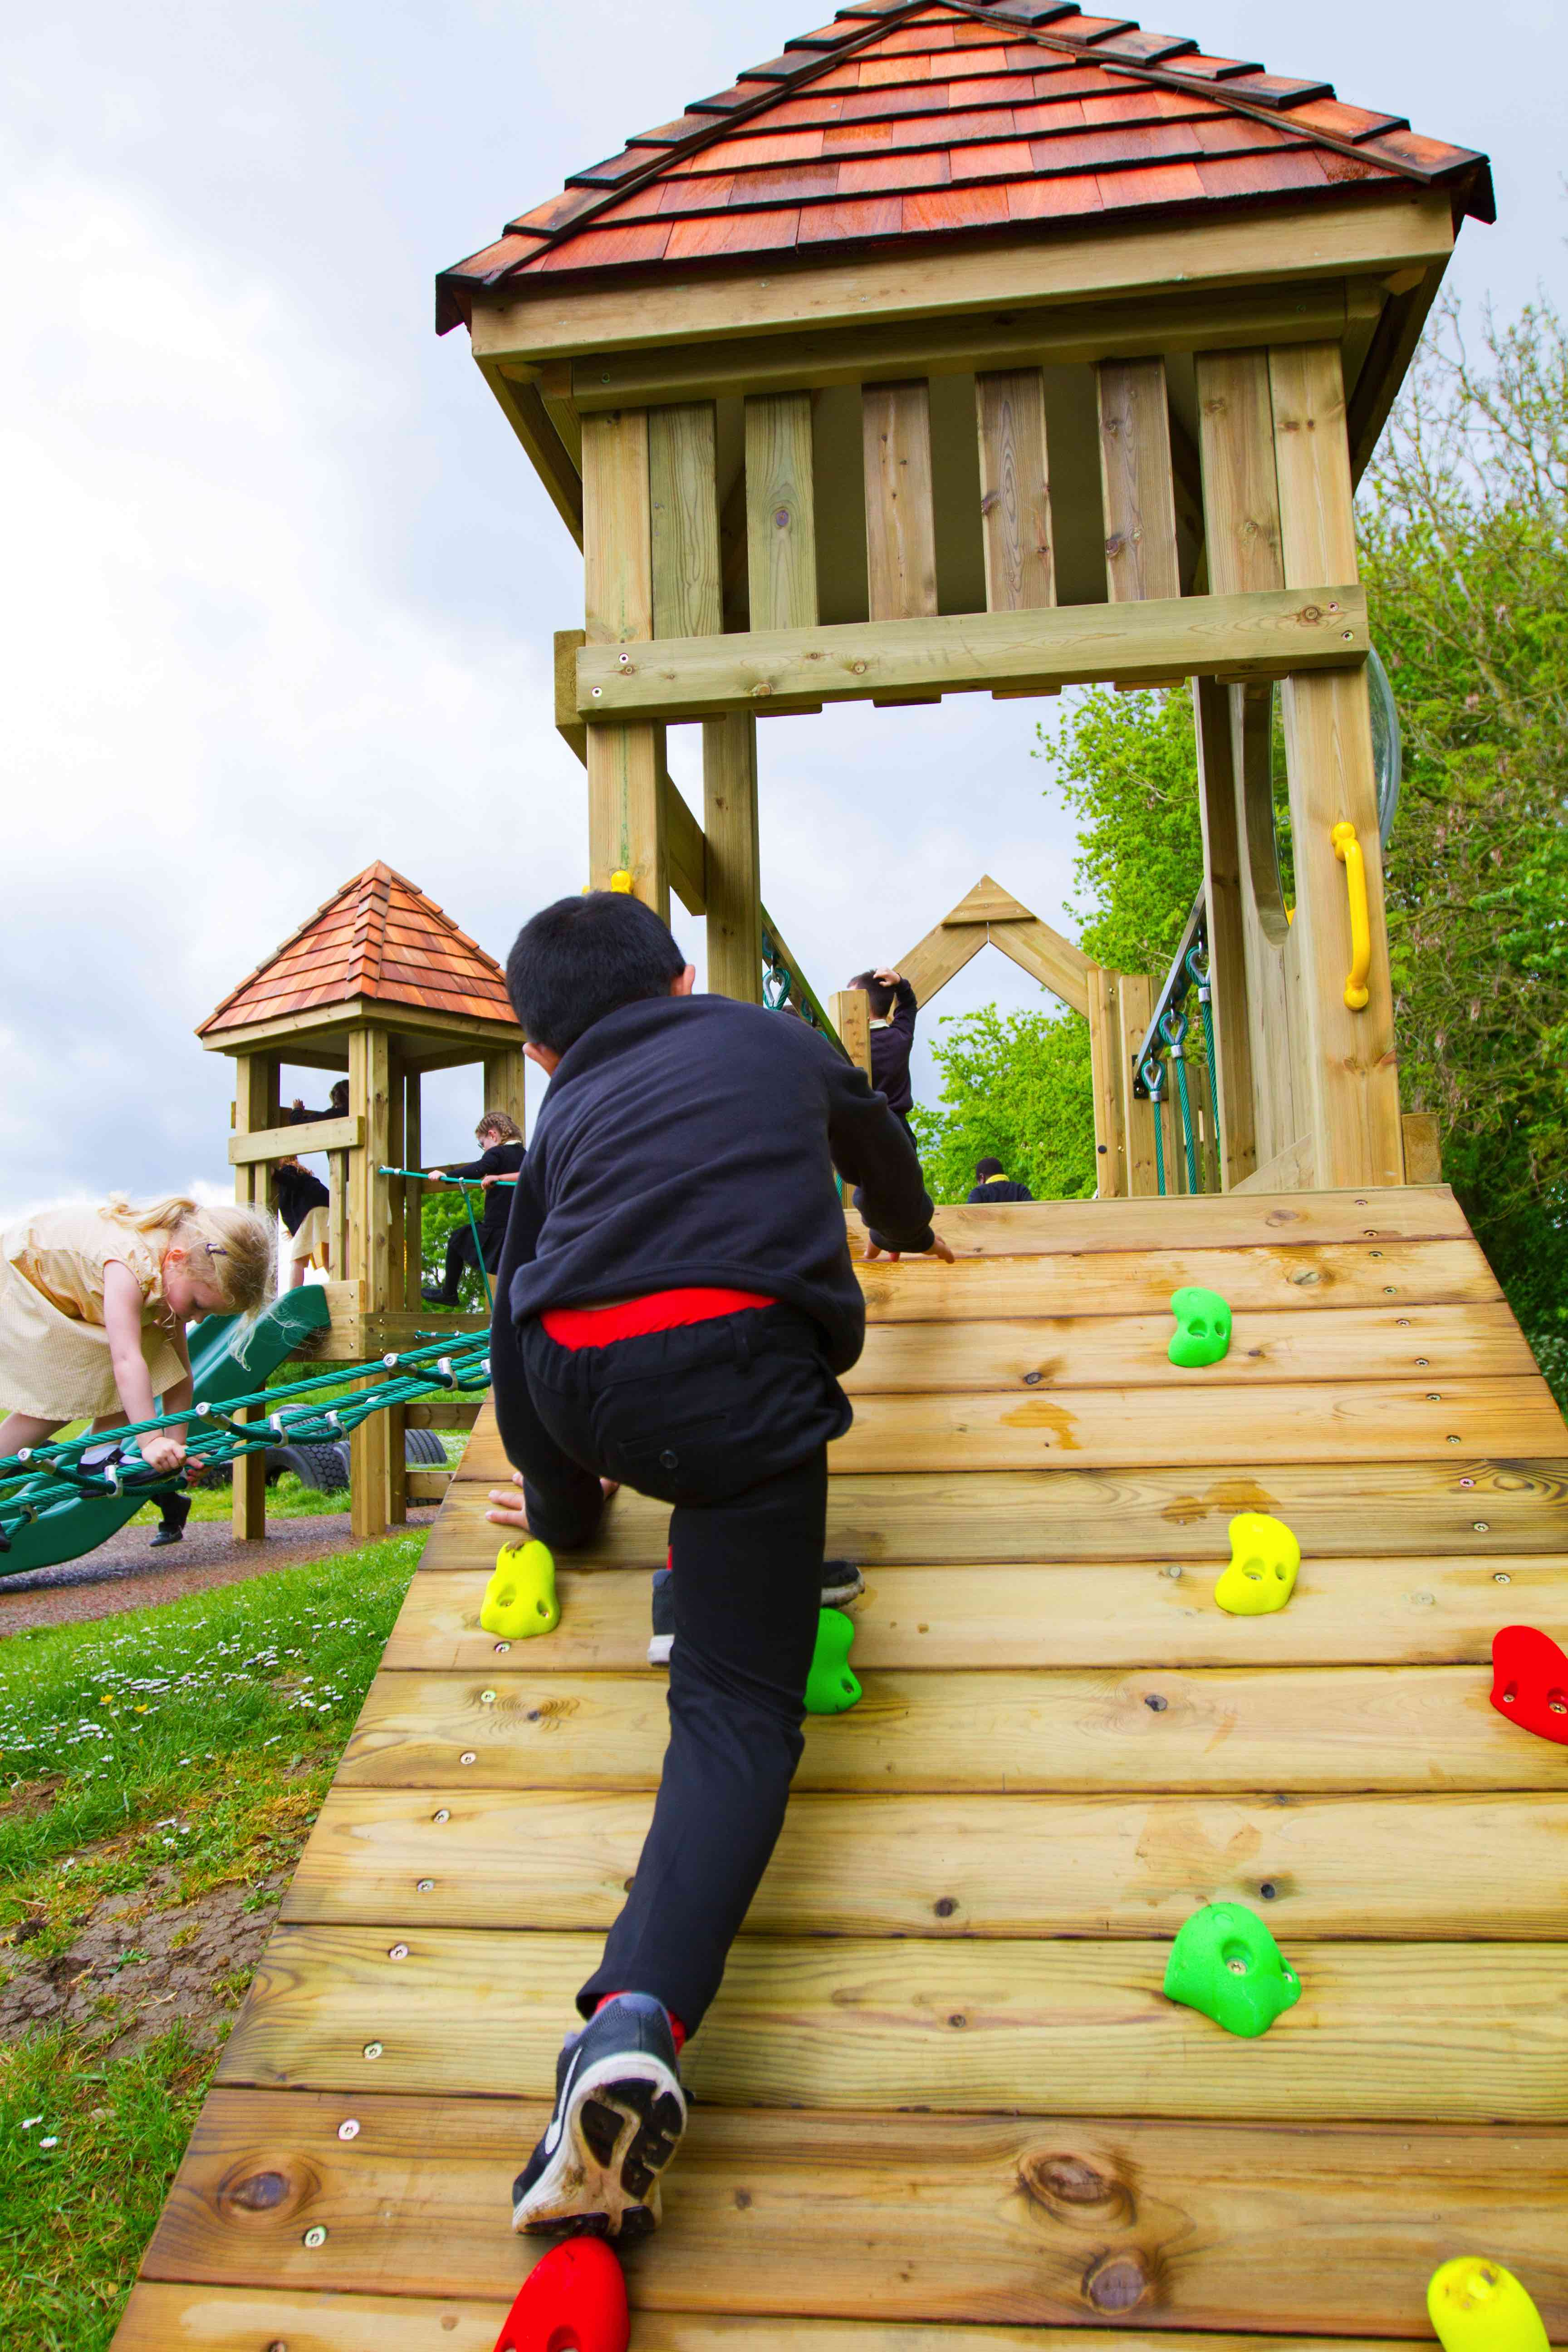 Every childs play area needs the wooden ramp climber !